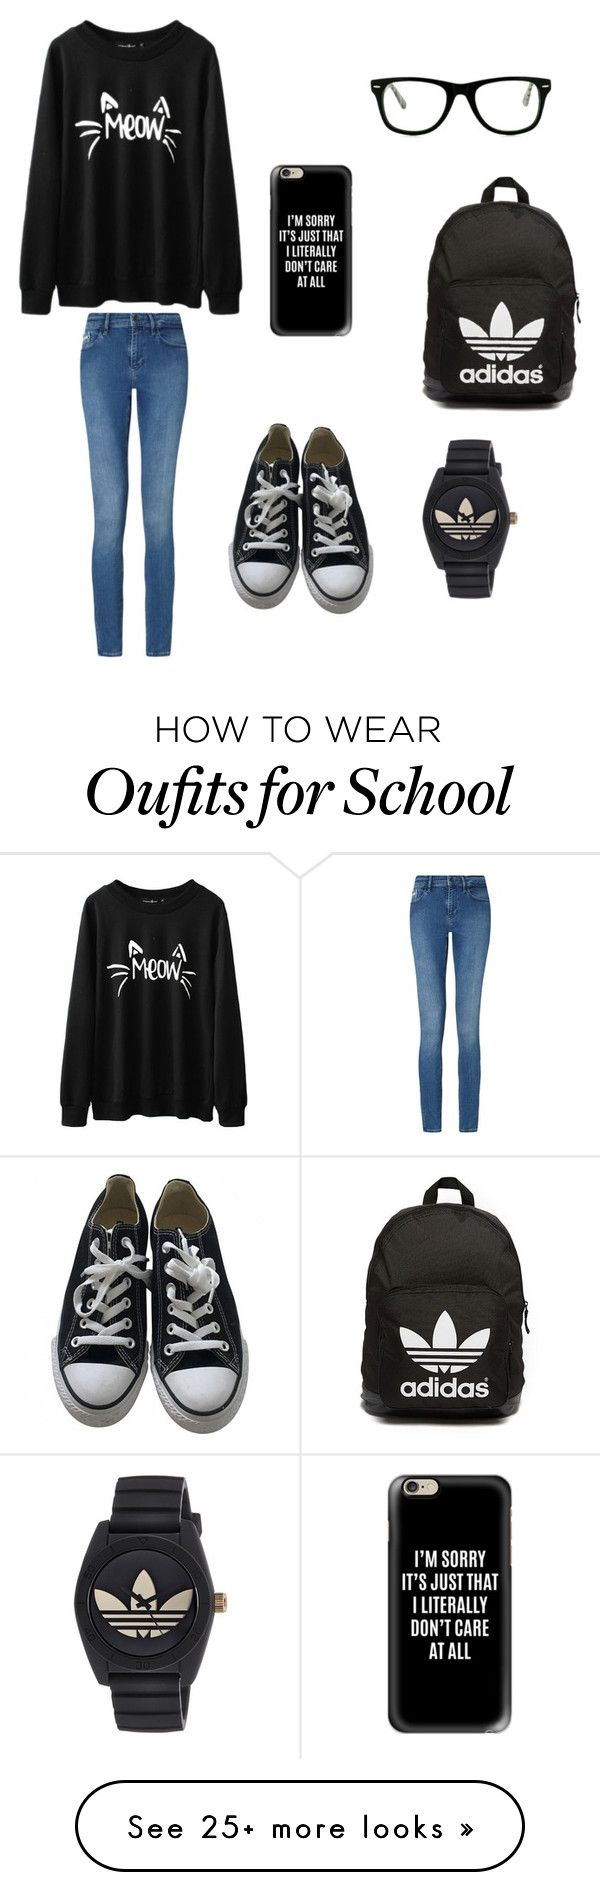 """BFFs outfits for school: @annabeth999"" by holly-hills on Polyvore featuring Calvin Klein, Converse, adidas Originals, Casetify, Muse and adidas"